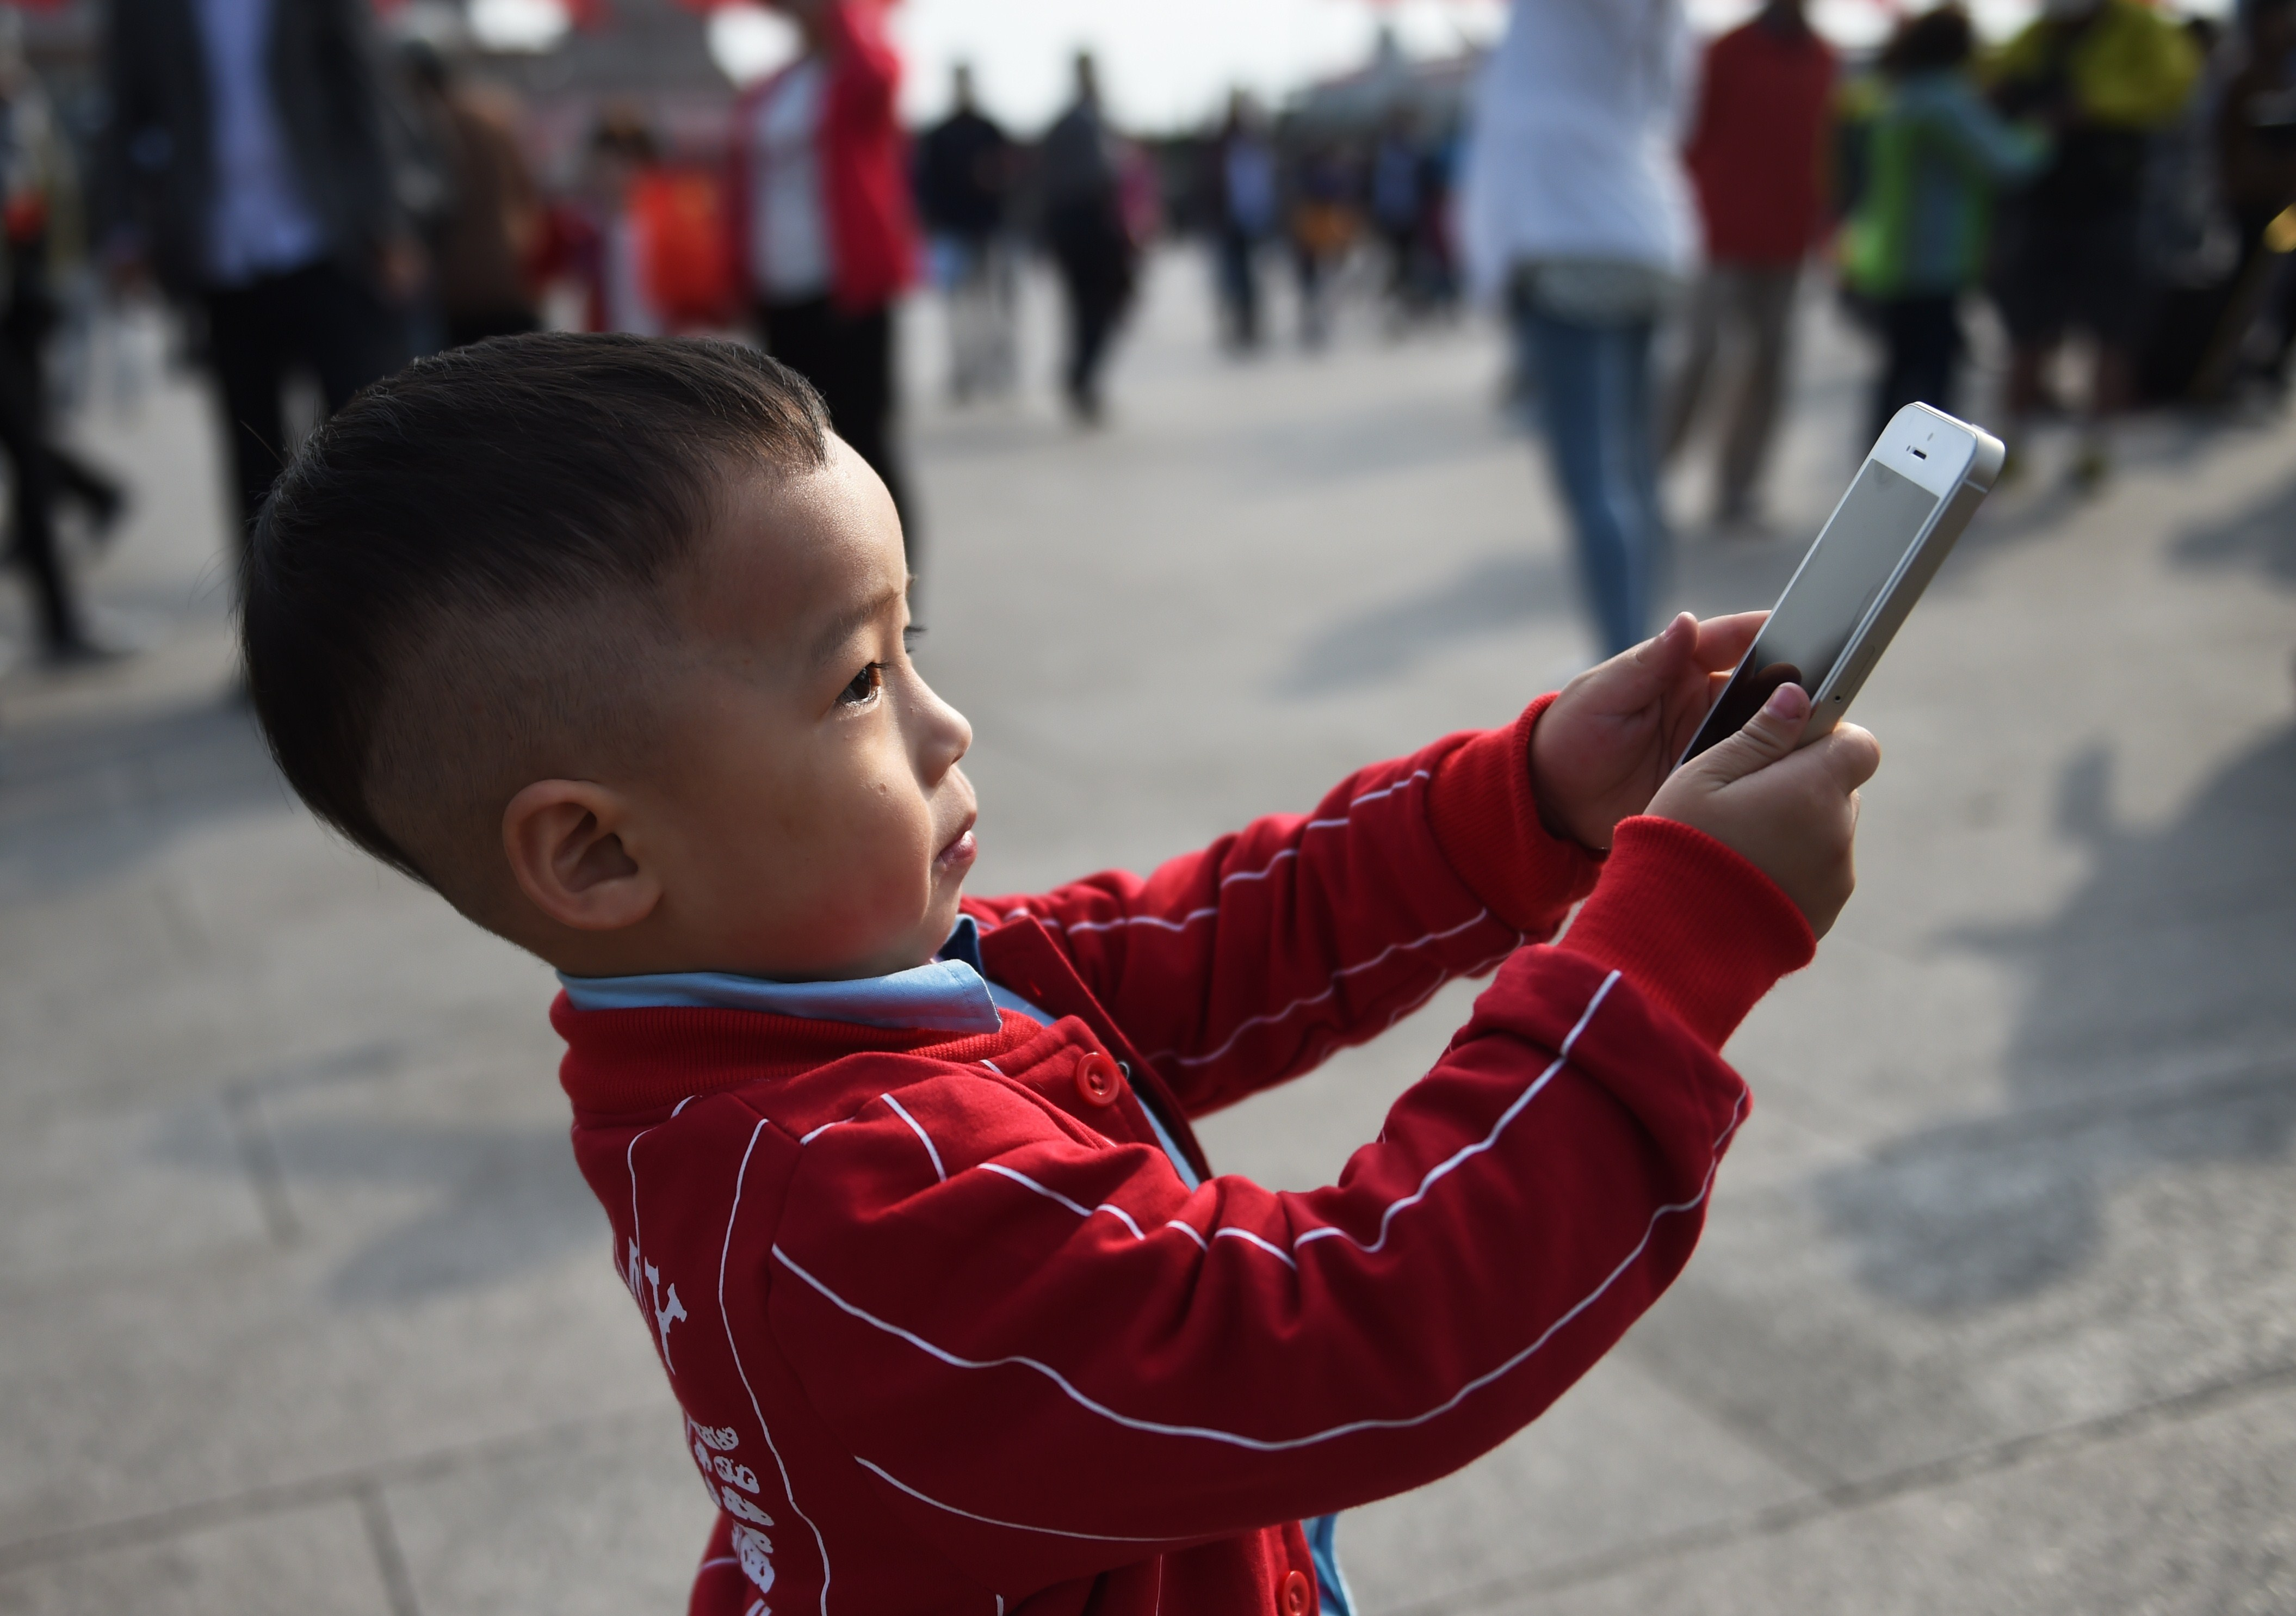 A young boy uses an iPhone to take photos in Tiananmen Square in Beijing on September 30, 2014.